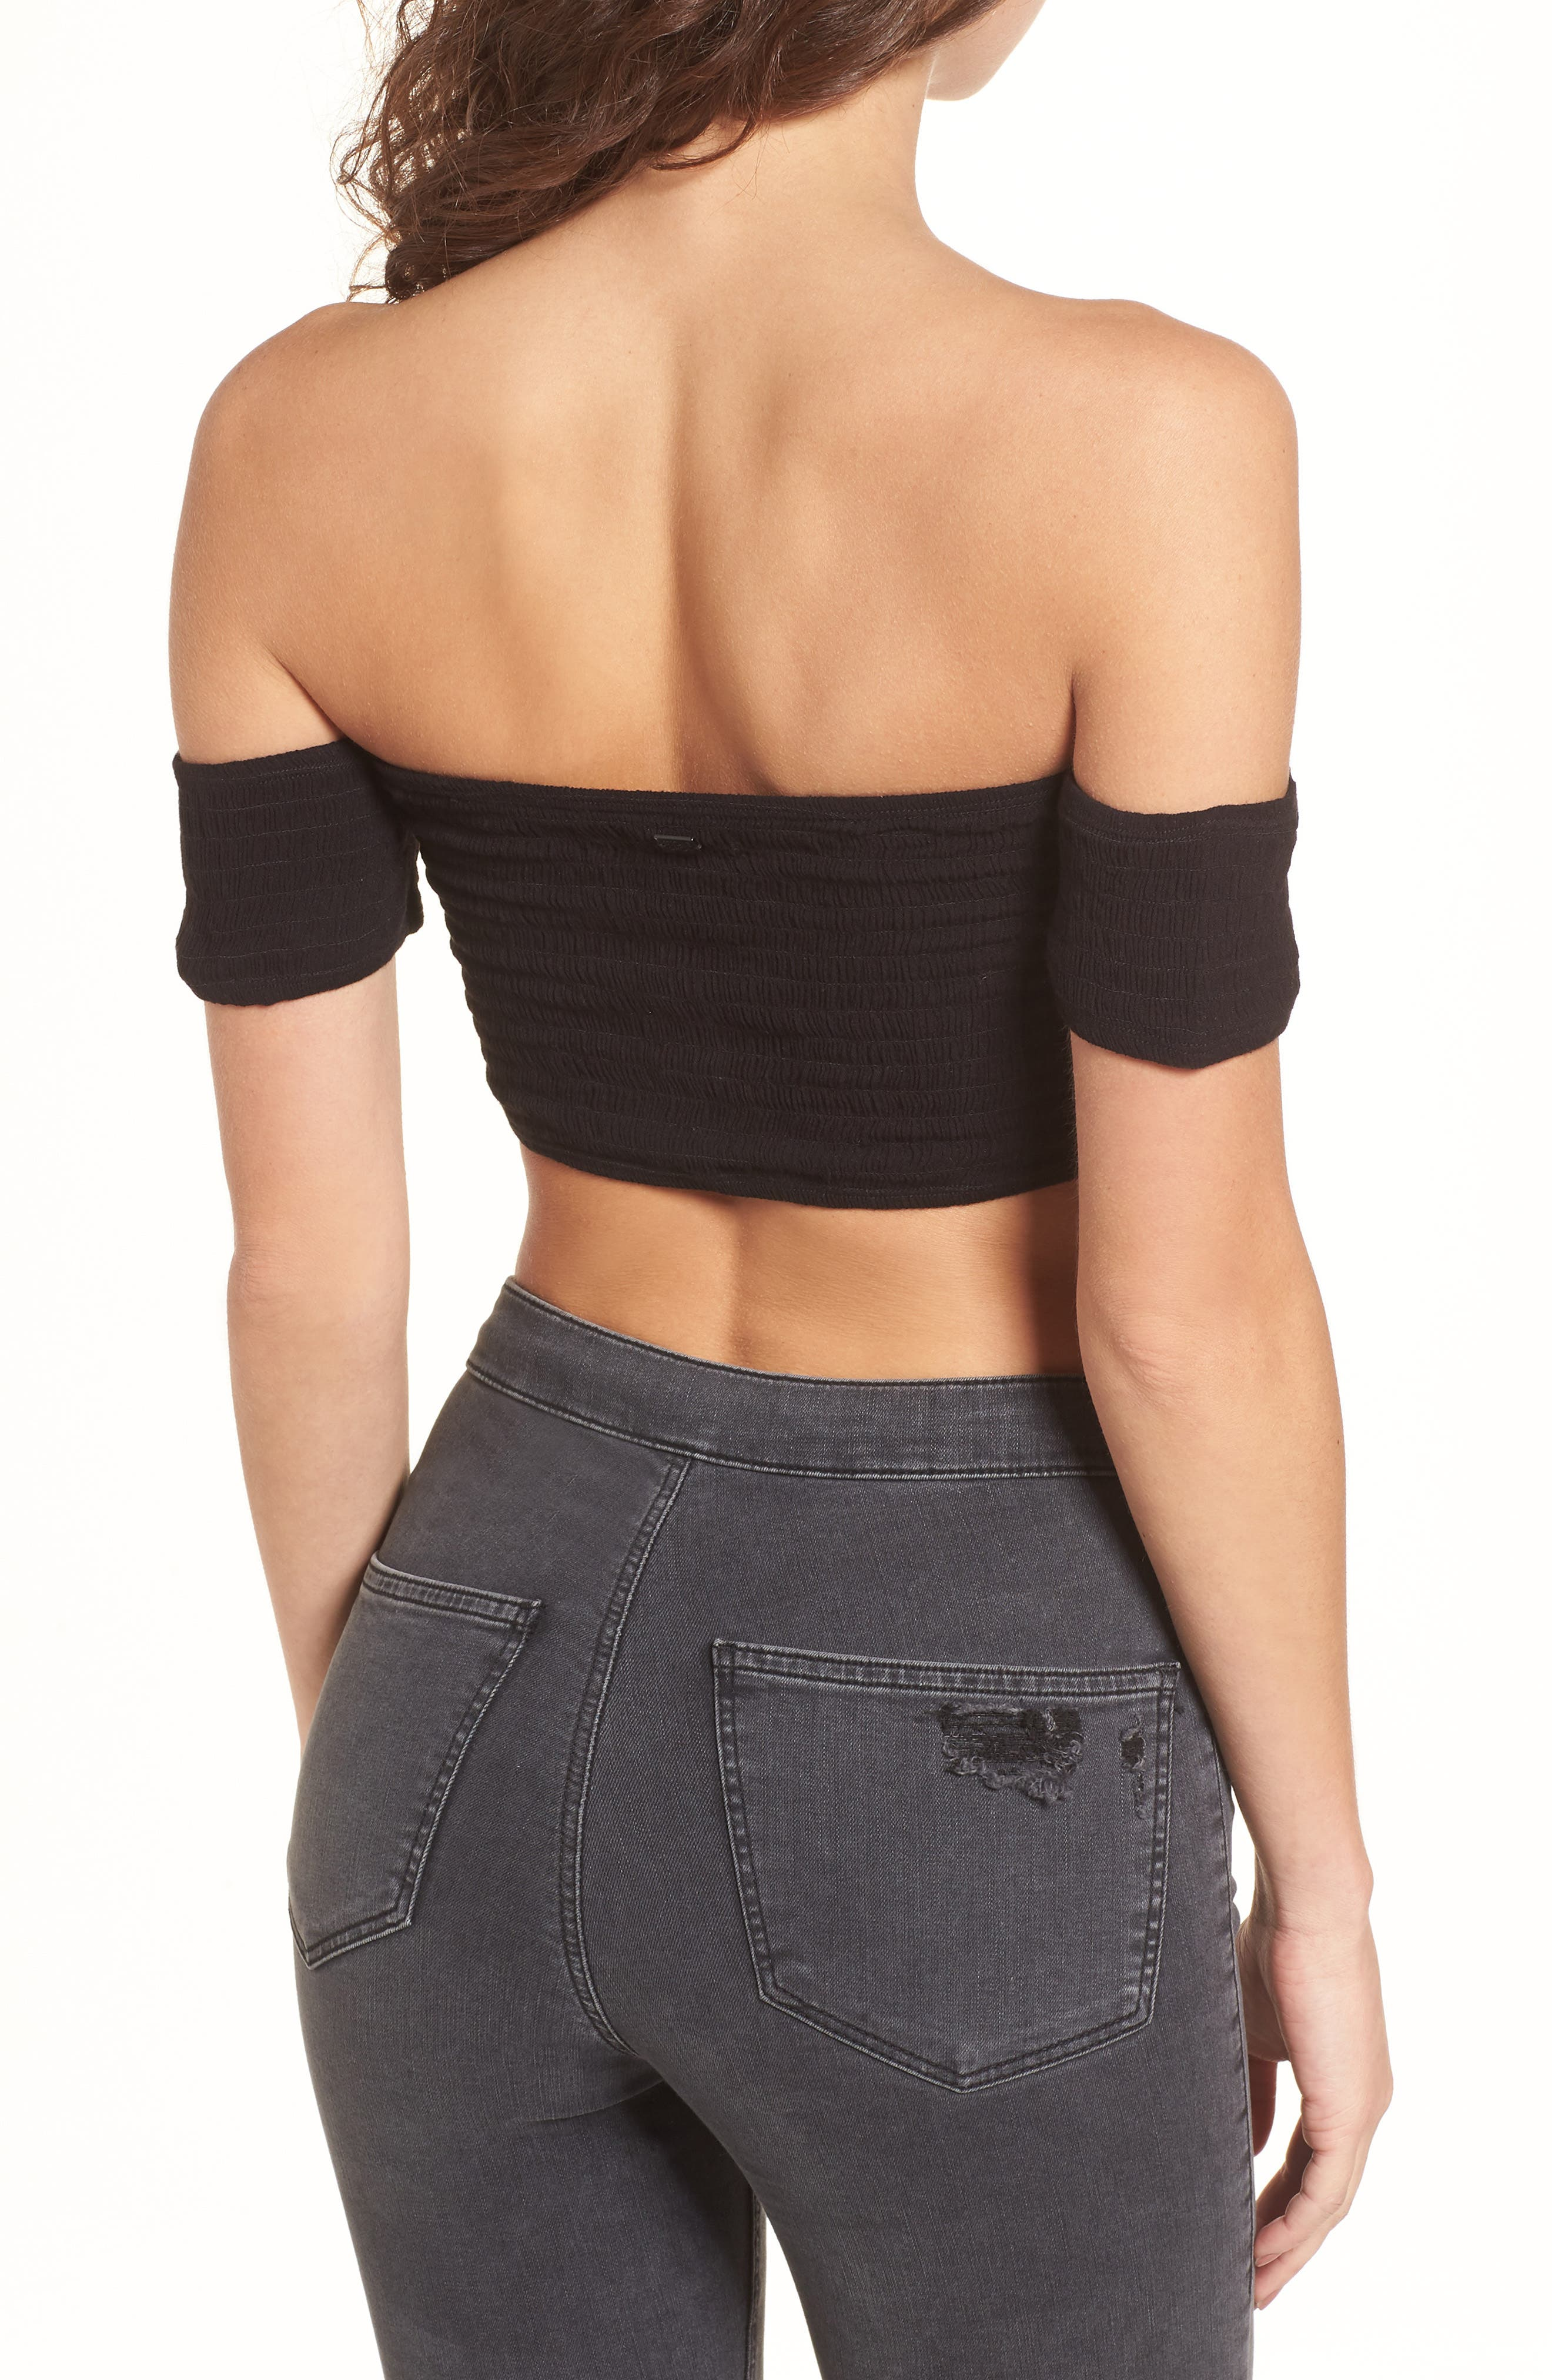 STONE ROW,                             Addicted 2 Me Smocked Crop Top,                             Alternate thumbnail 2, color,                             001